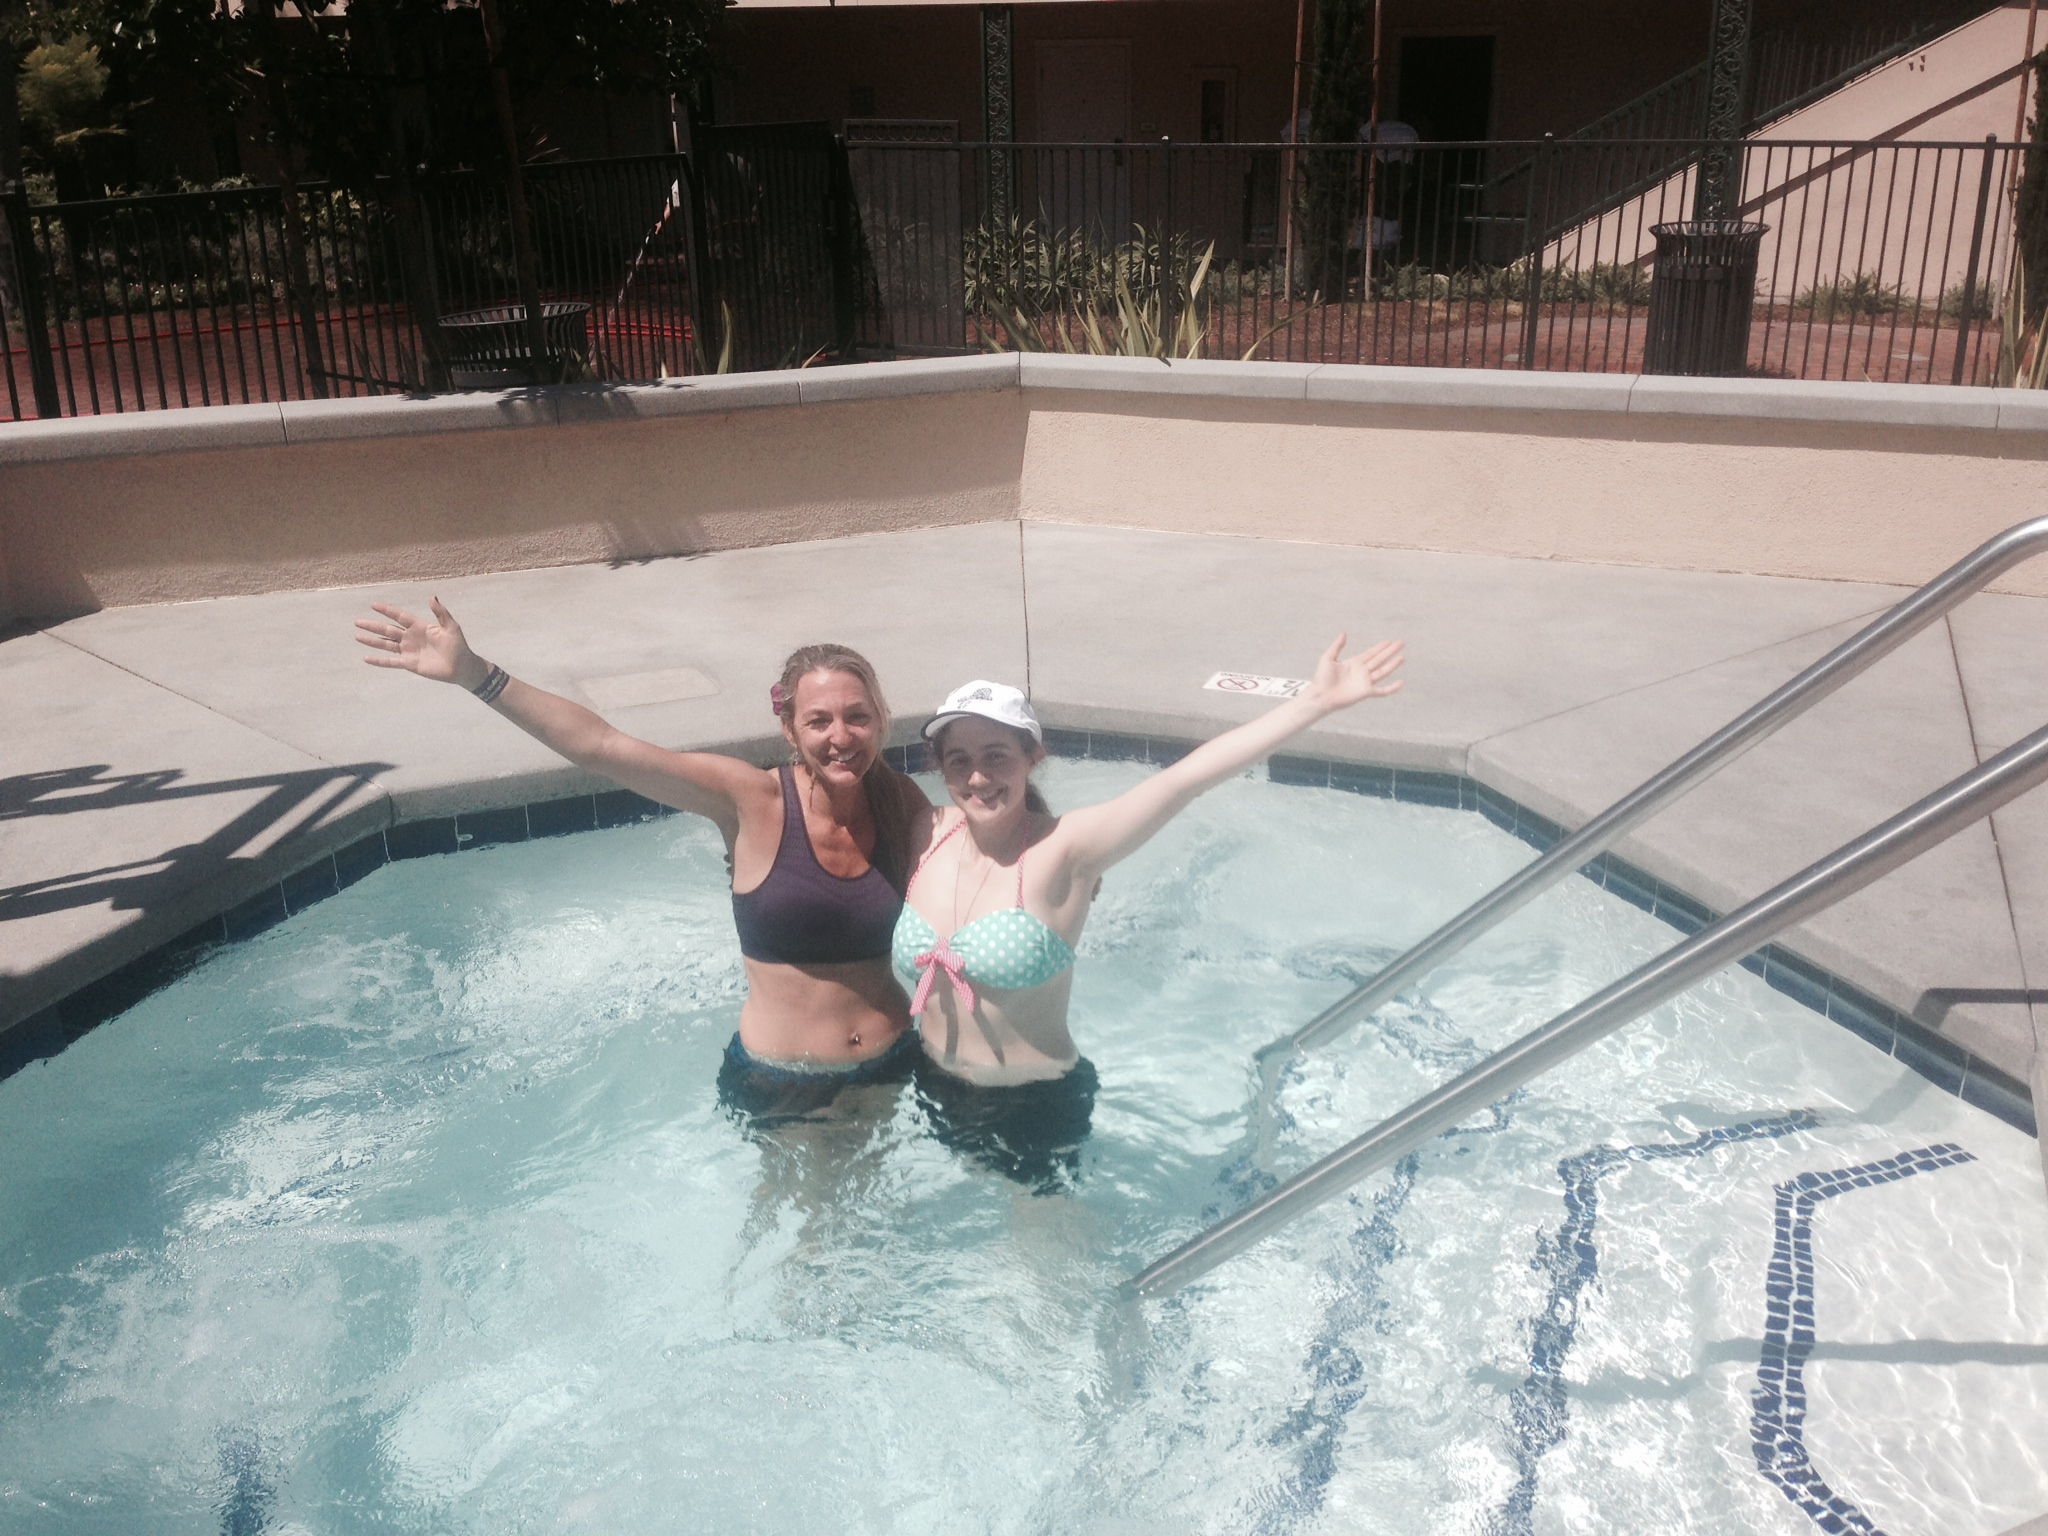 Carolina and I in the Jacuzzi recovering and celebrating.  She ran a PR 1:51 half.  Soon I will be able to keep up with her again.  So proud of her!!  She is a total Rock Star!